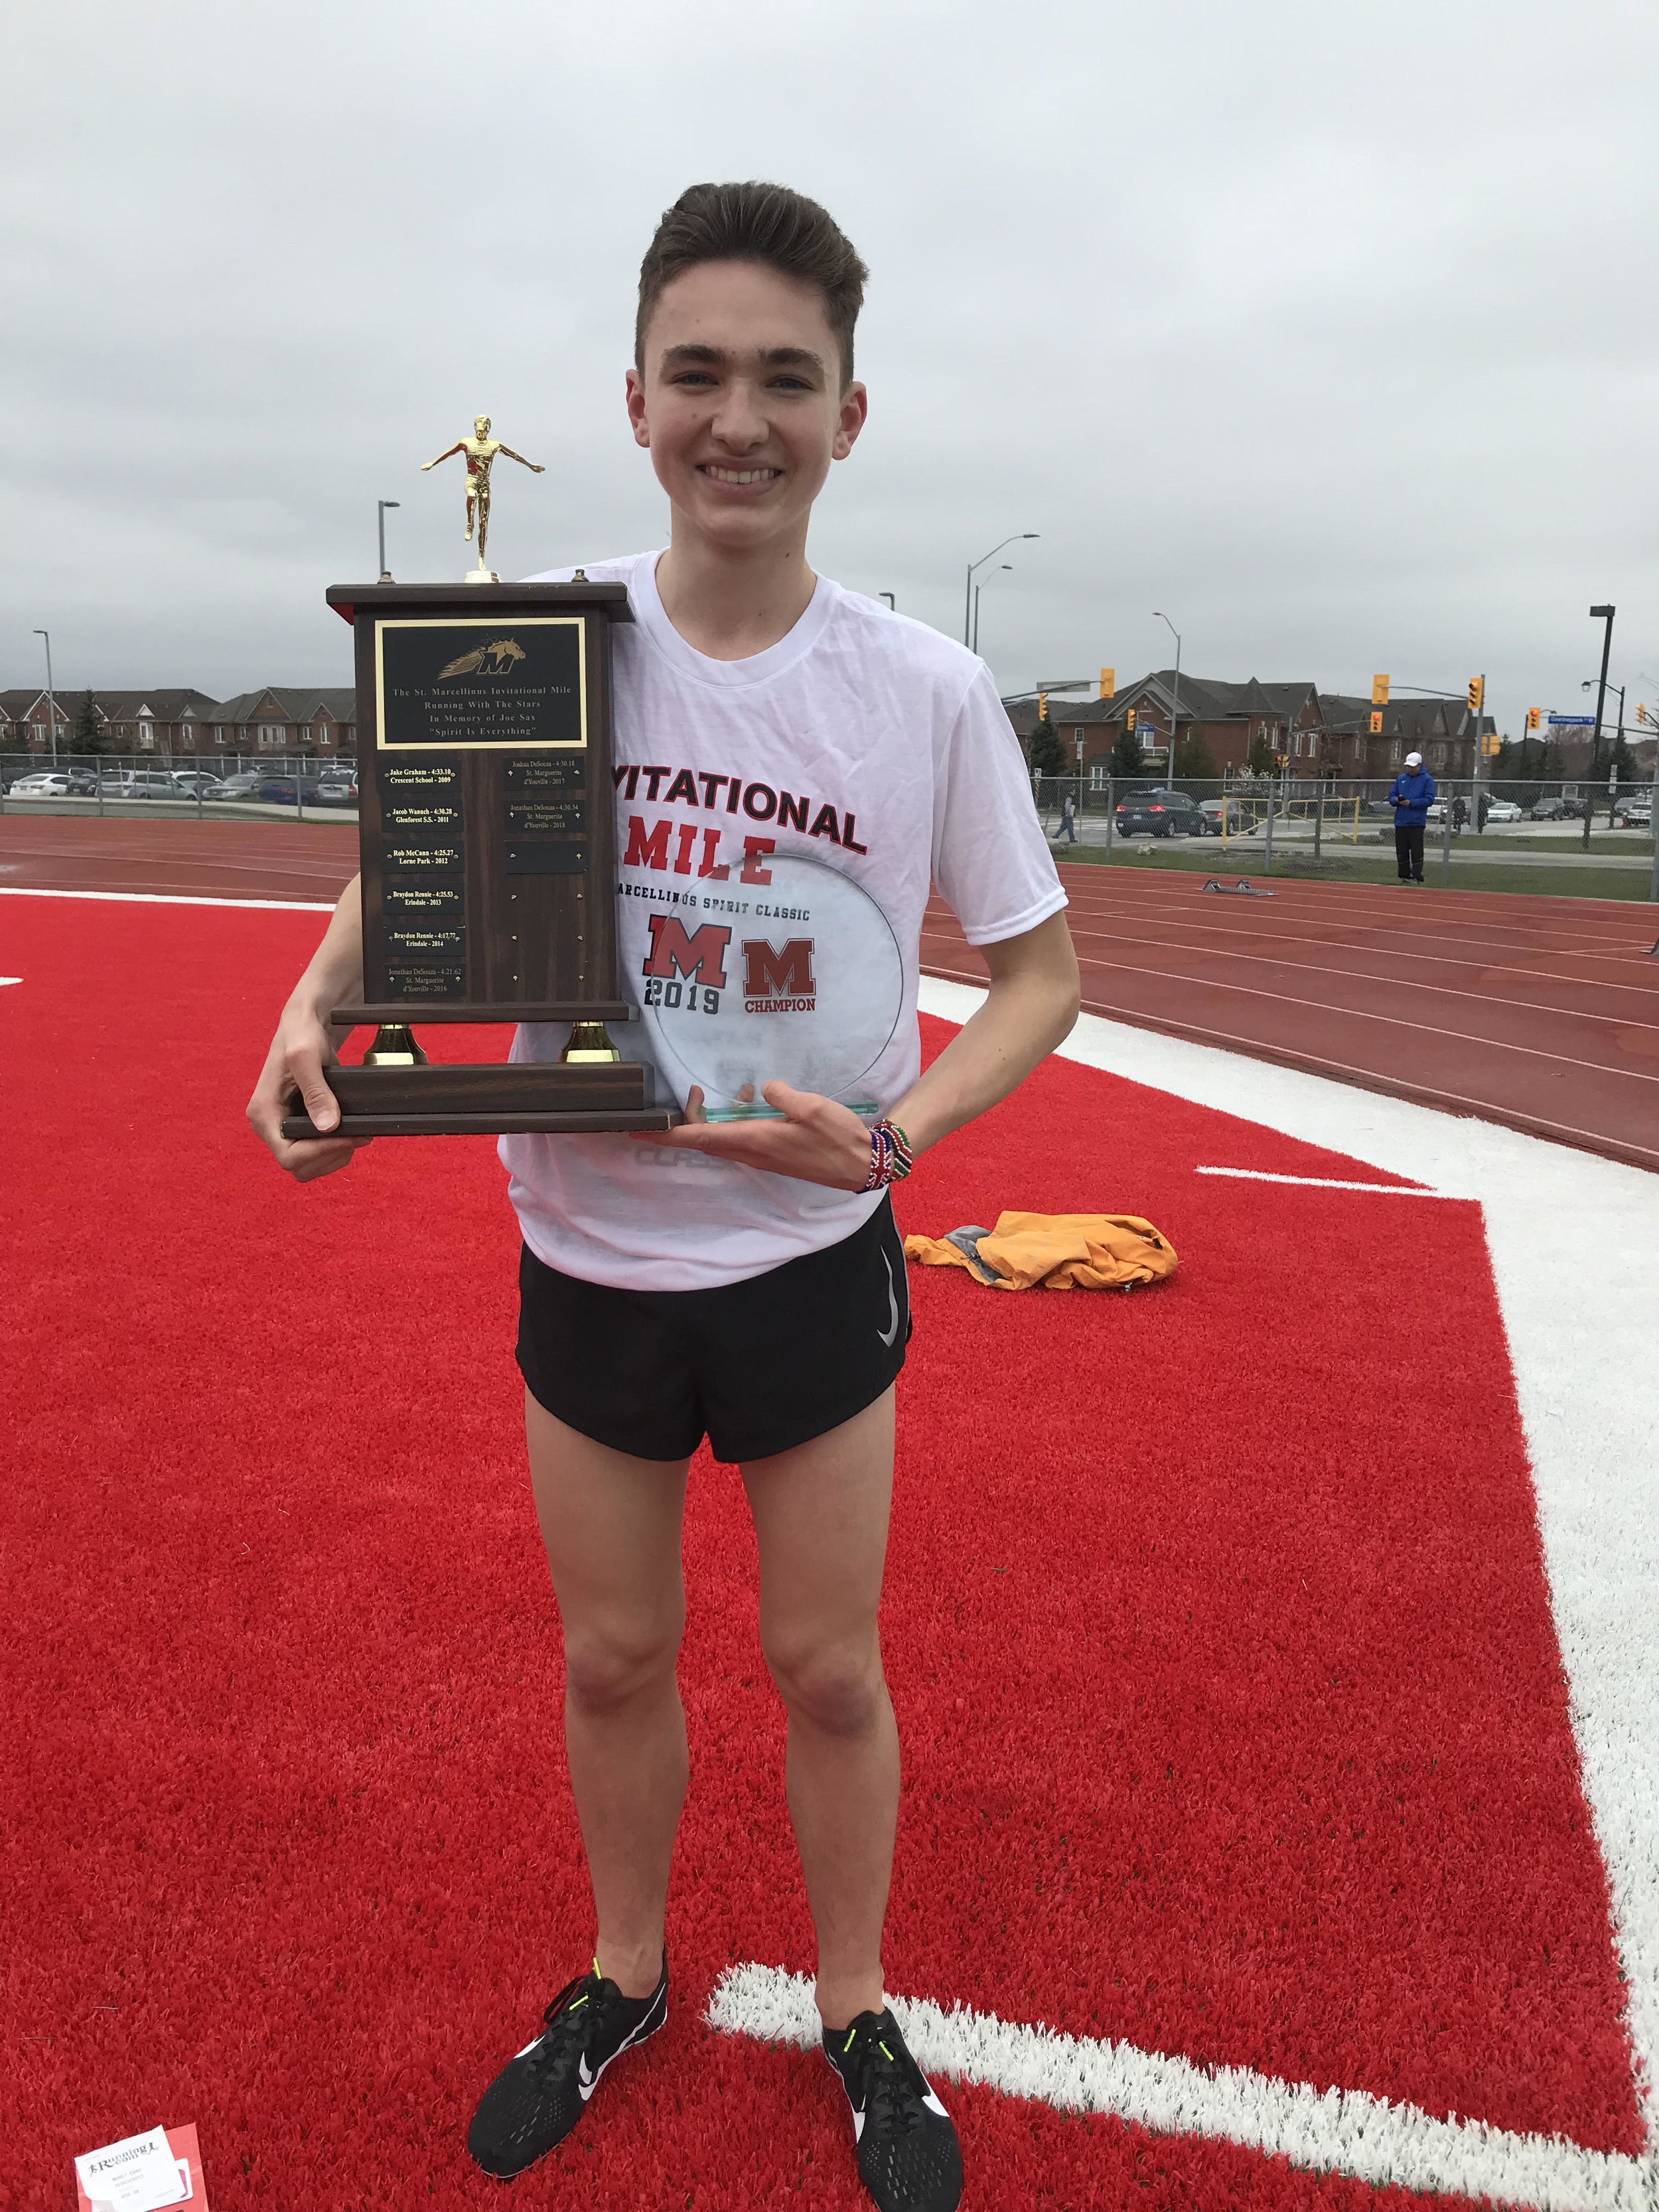 The 2019 St. Macrcellinus Invitational Mile Champion, Max Davies from Northern. 4:25.50